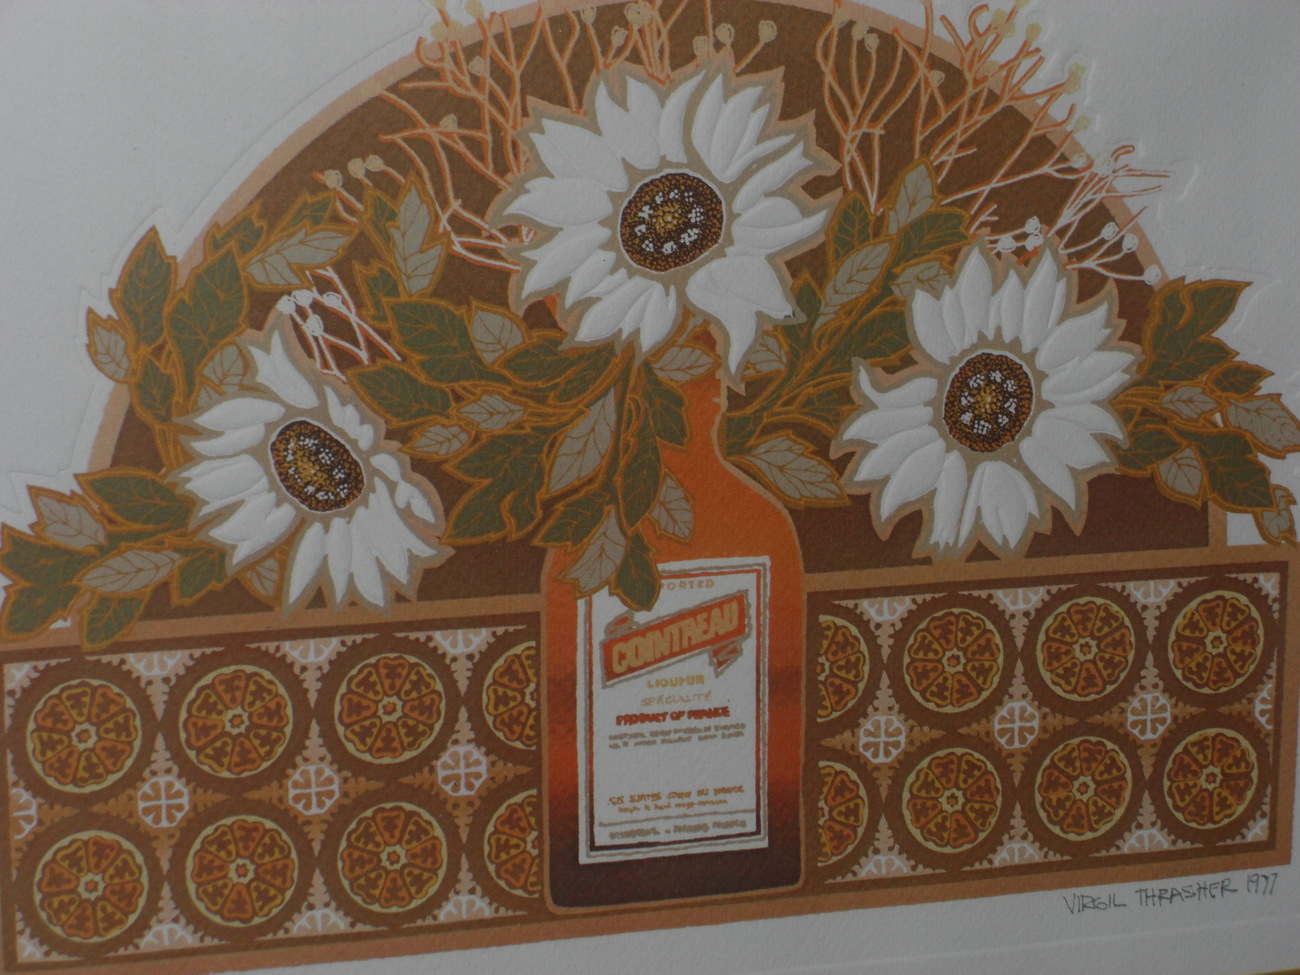 VIRGIL THRASHER Original 1977 Cointreau With Flowers Etching Other